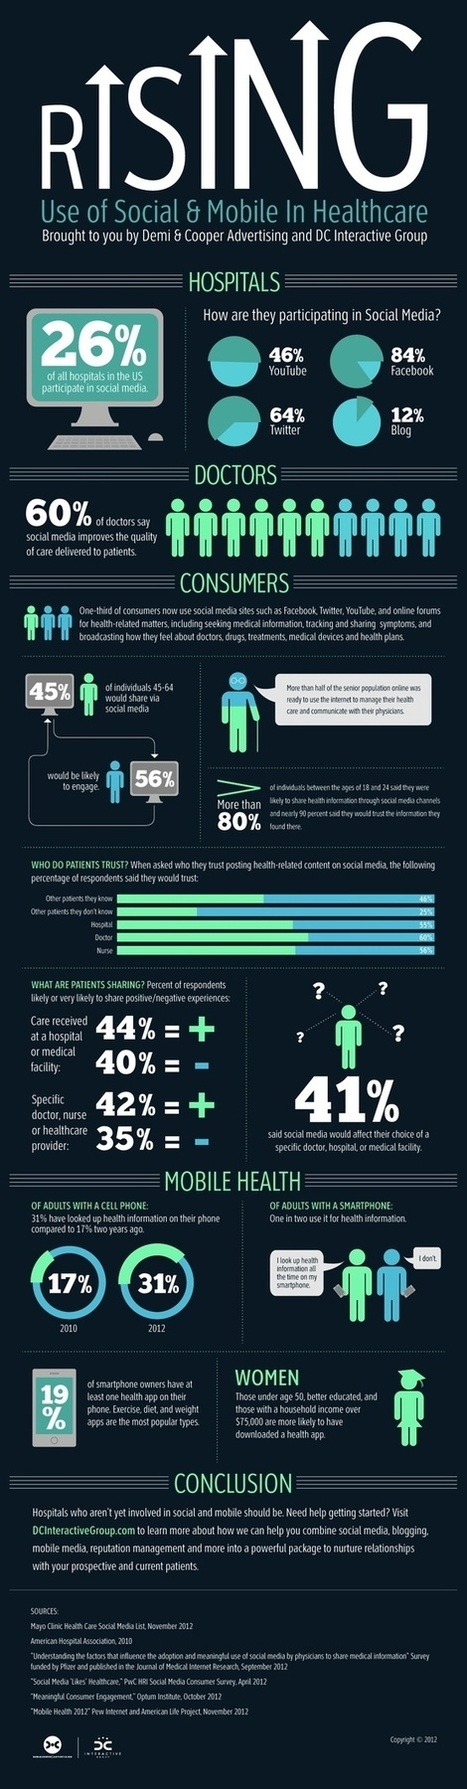 Rising Use of Social and Mobile in Healthcare | healthcare technology | Scoop.it